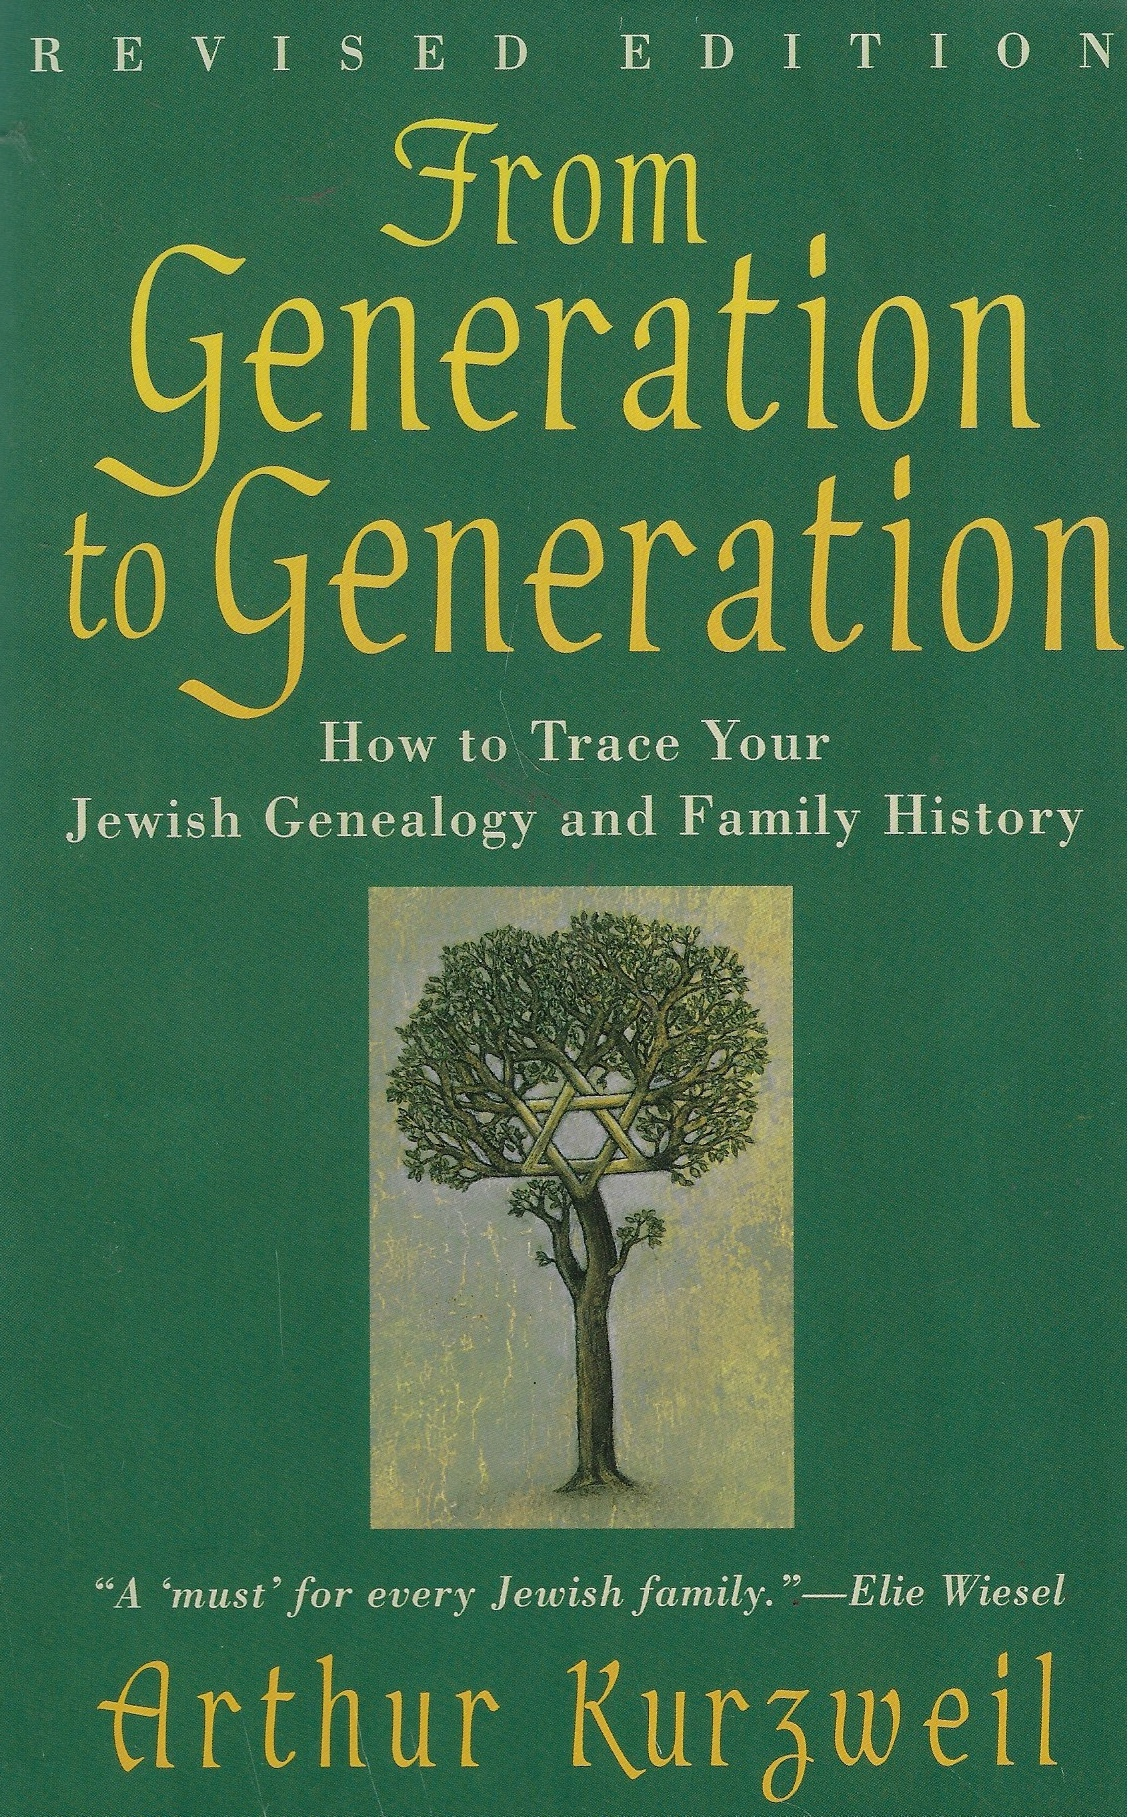 Image for From Generation to Generation How to Trace Your Jewish Genealogy and Family History